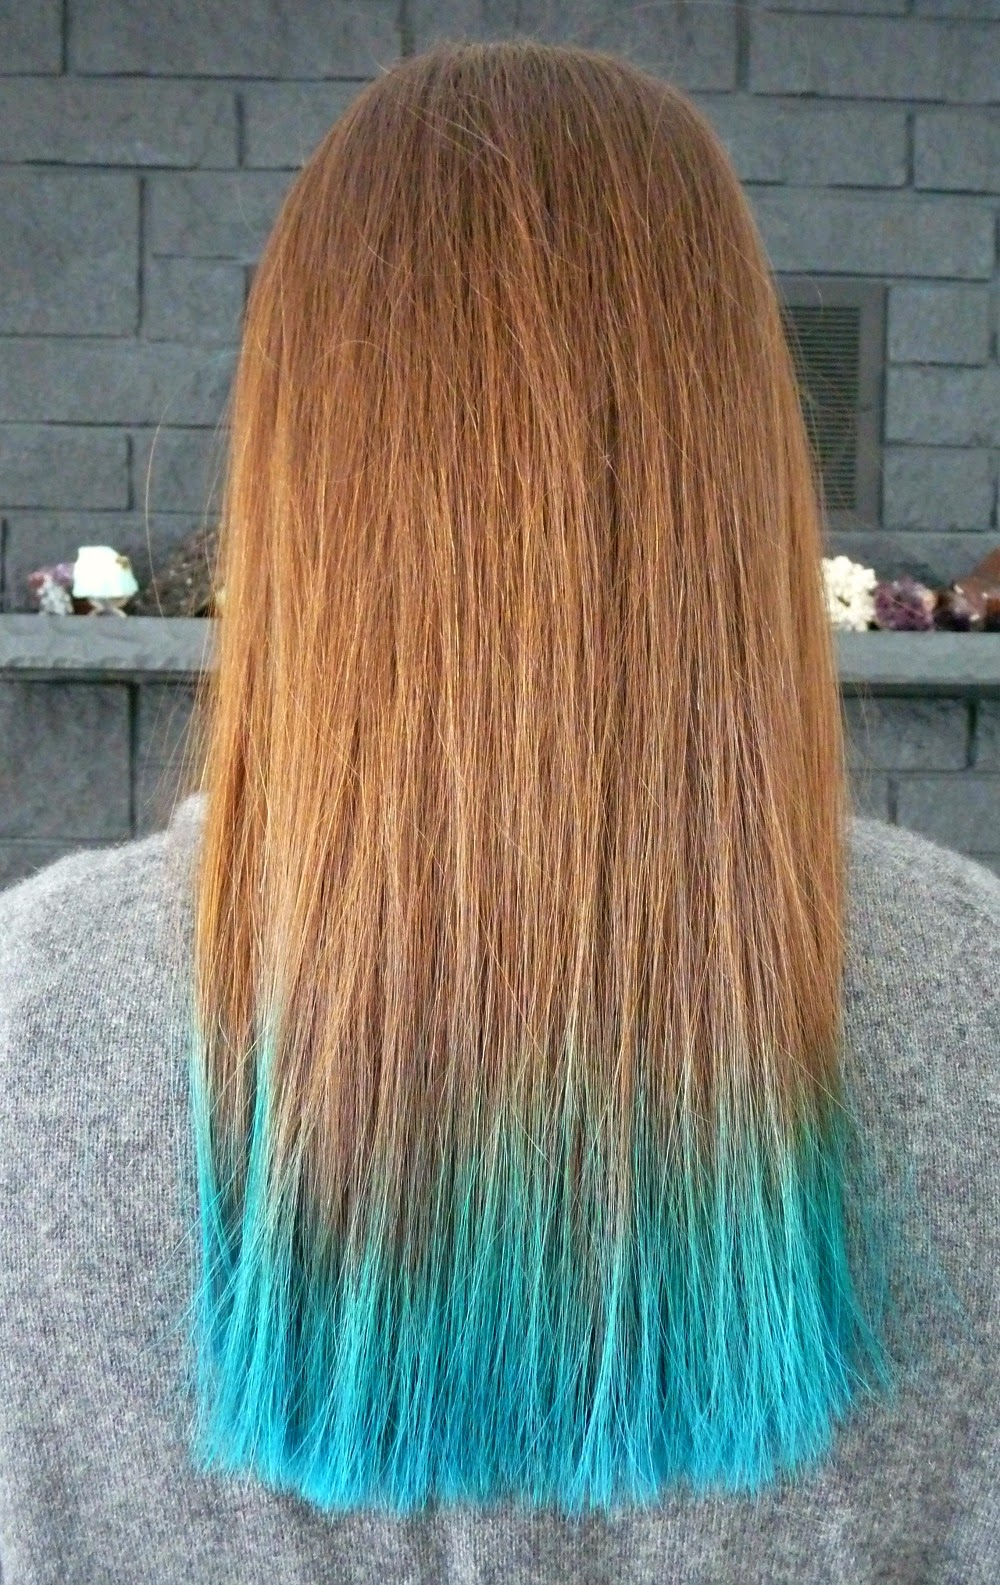 Natural Hair With Teal Ends